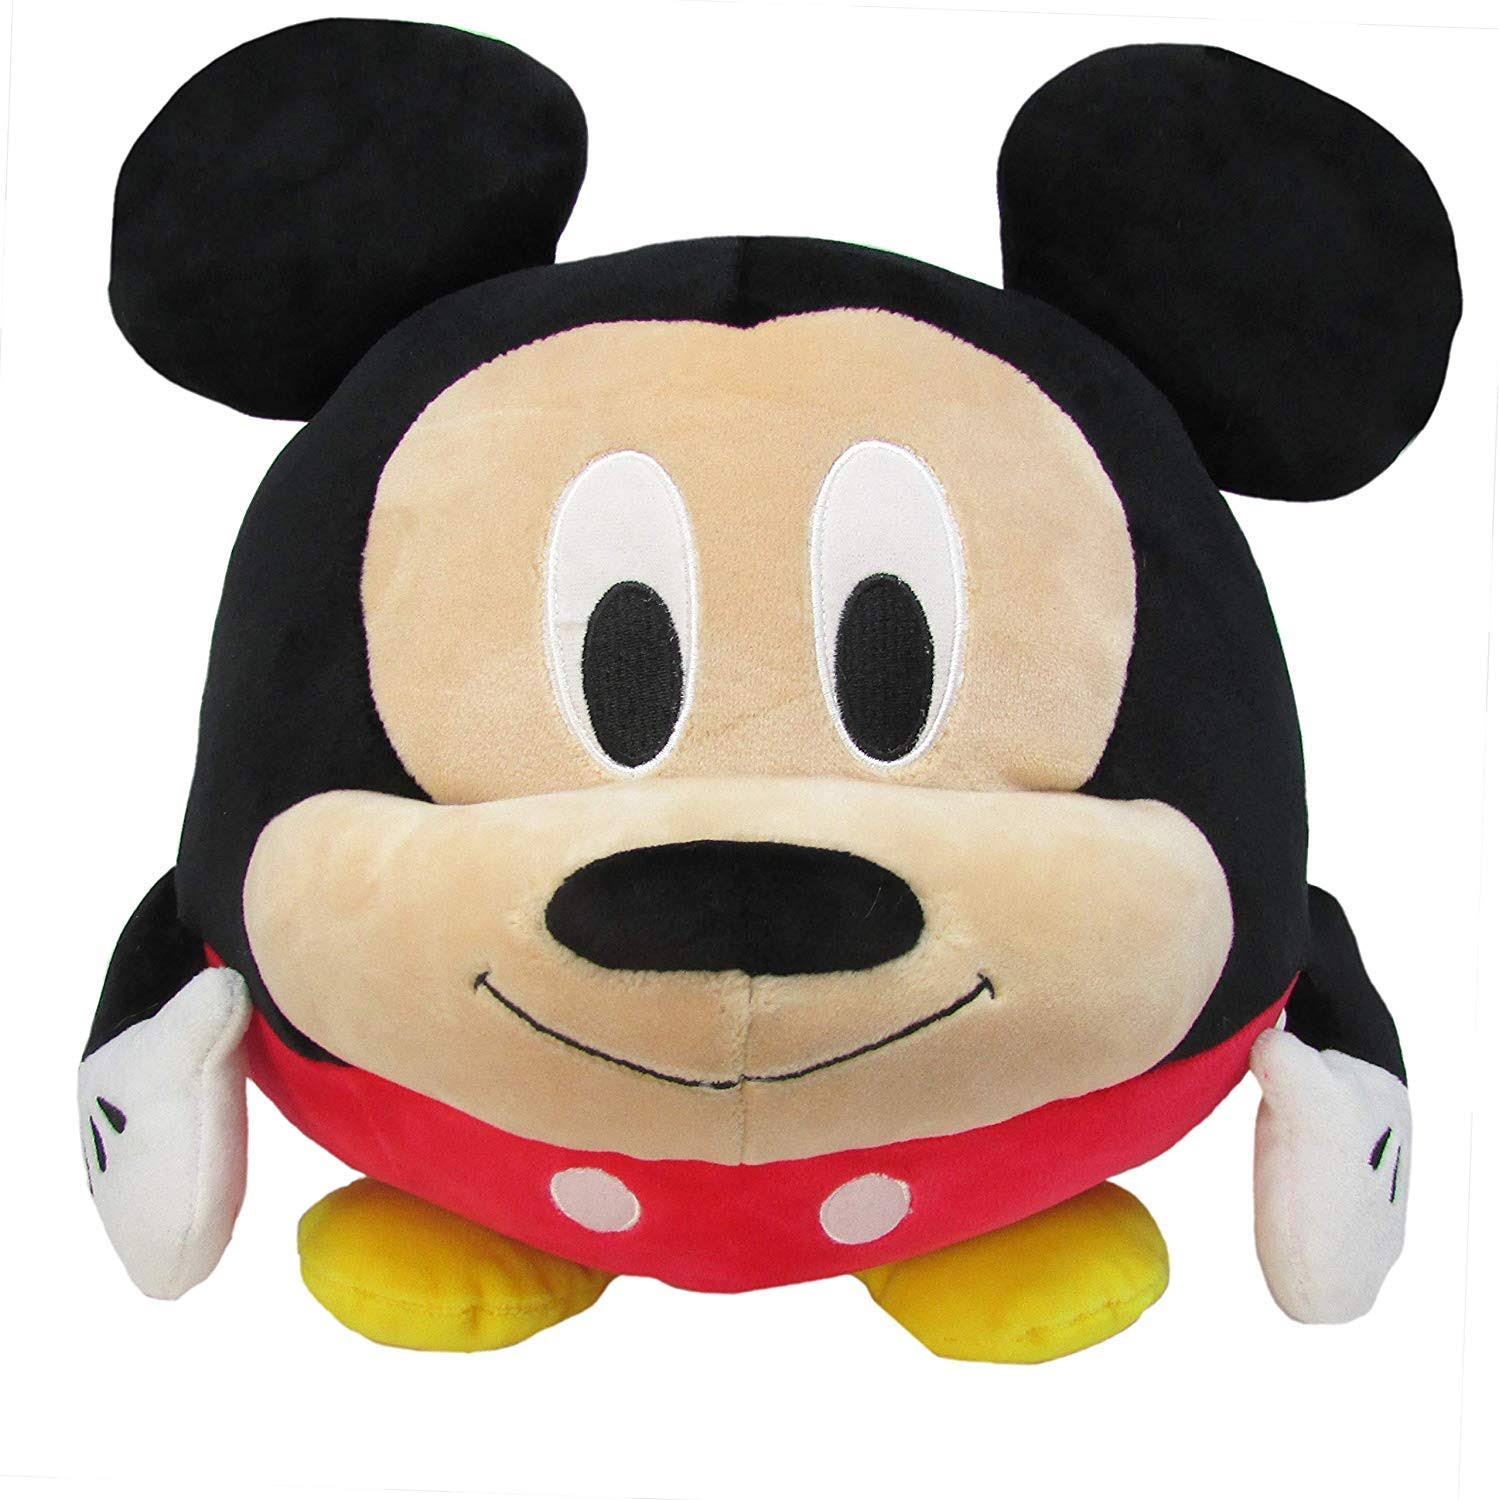 Cuddle Pal Disney Mickey Mouse Round Stuffed Animal Plush Toy, 10 Inches